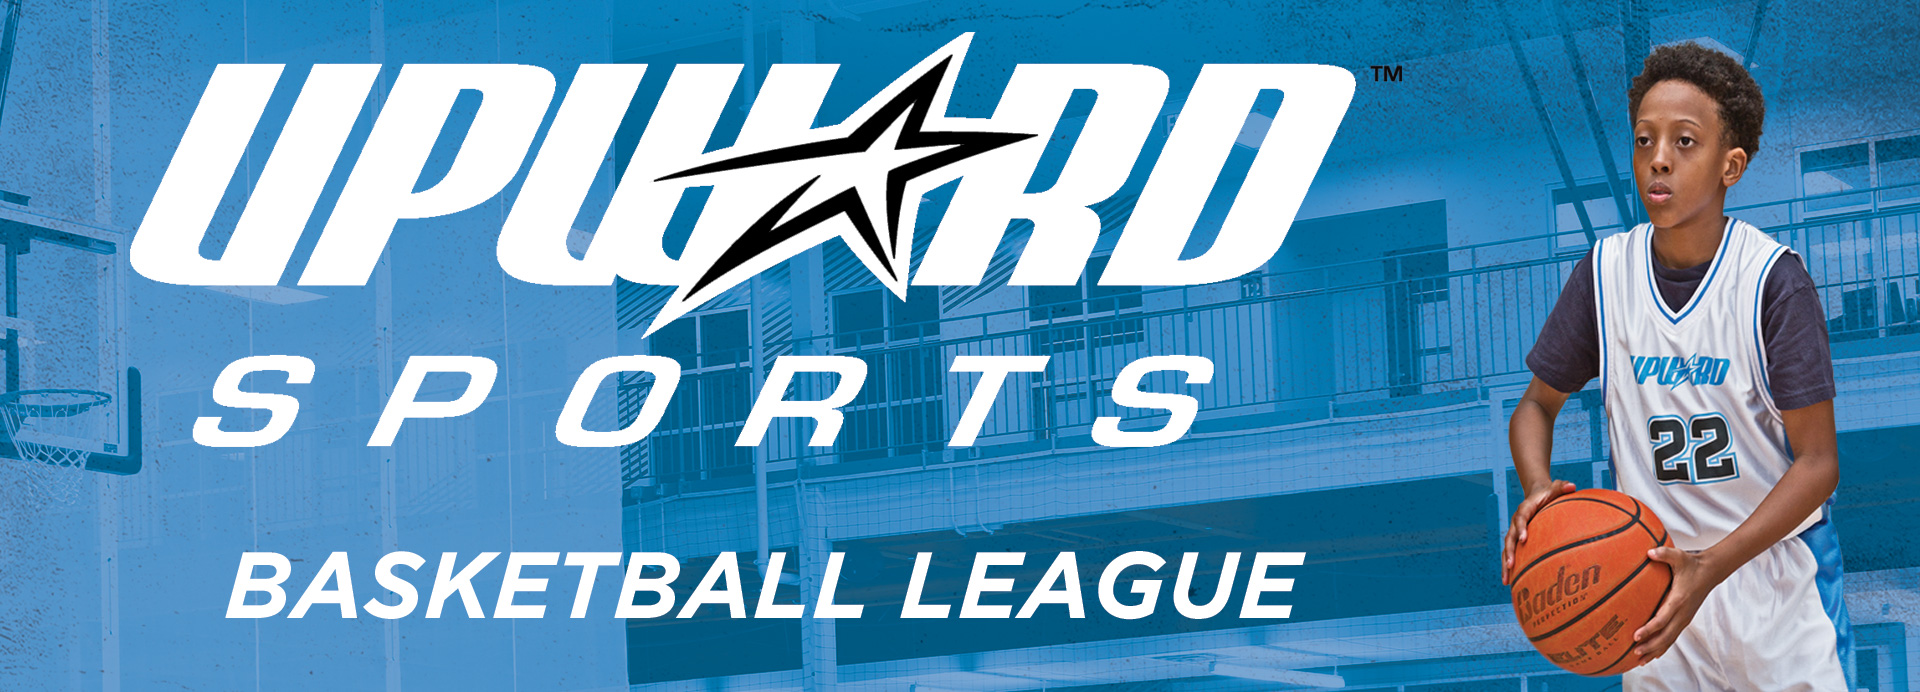 Upward Sports Basketball League